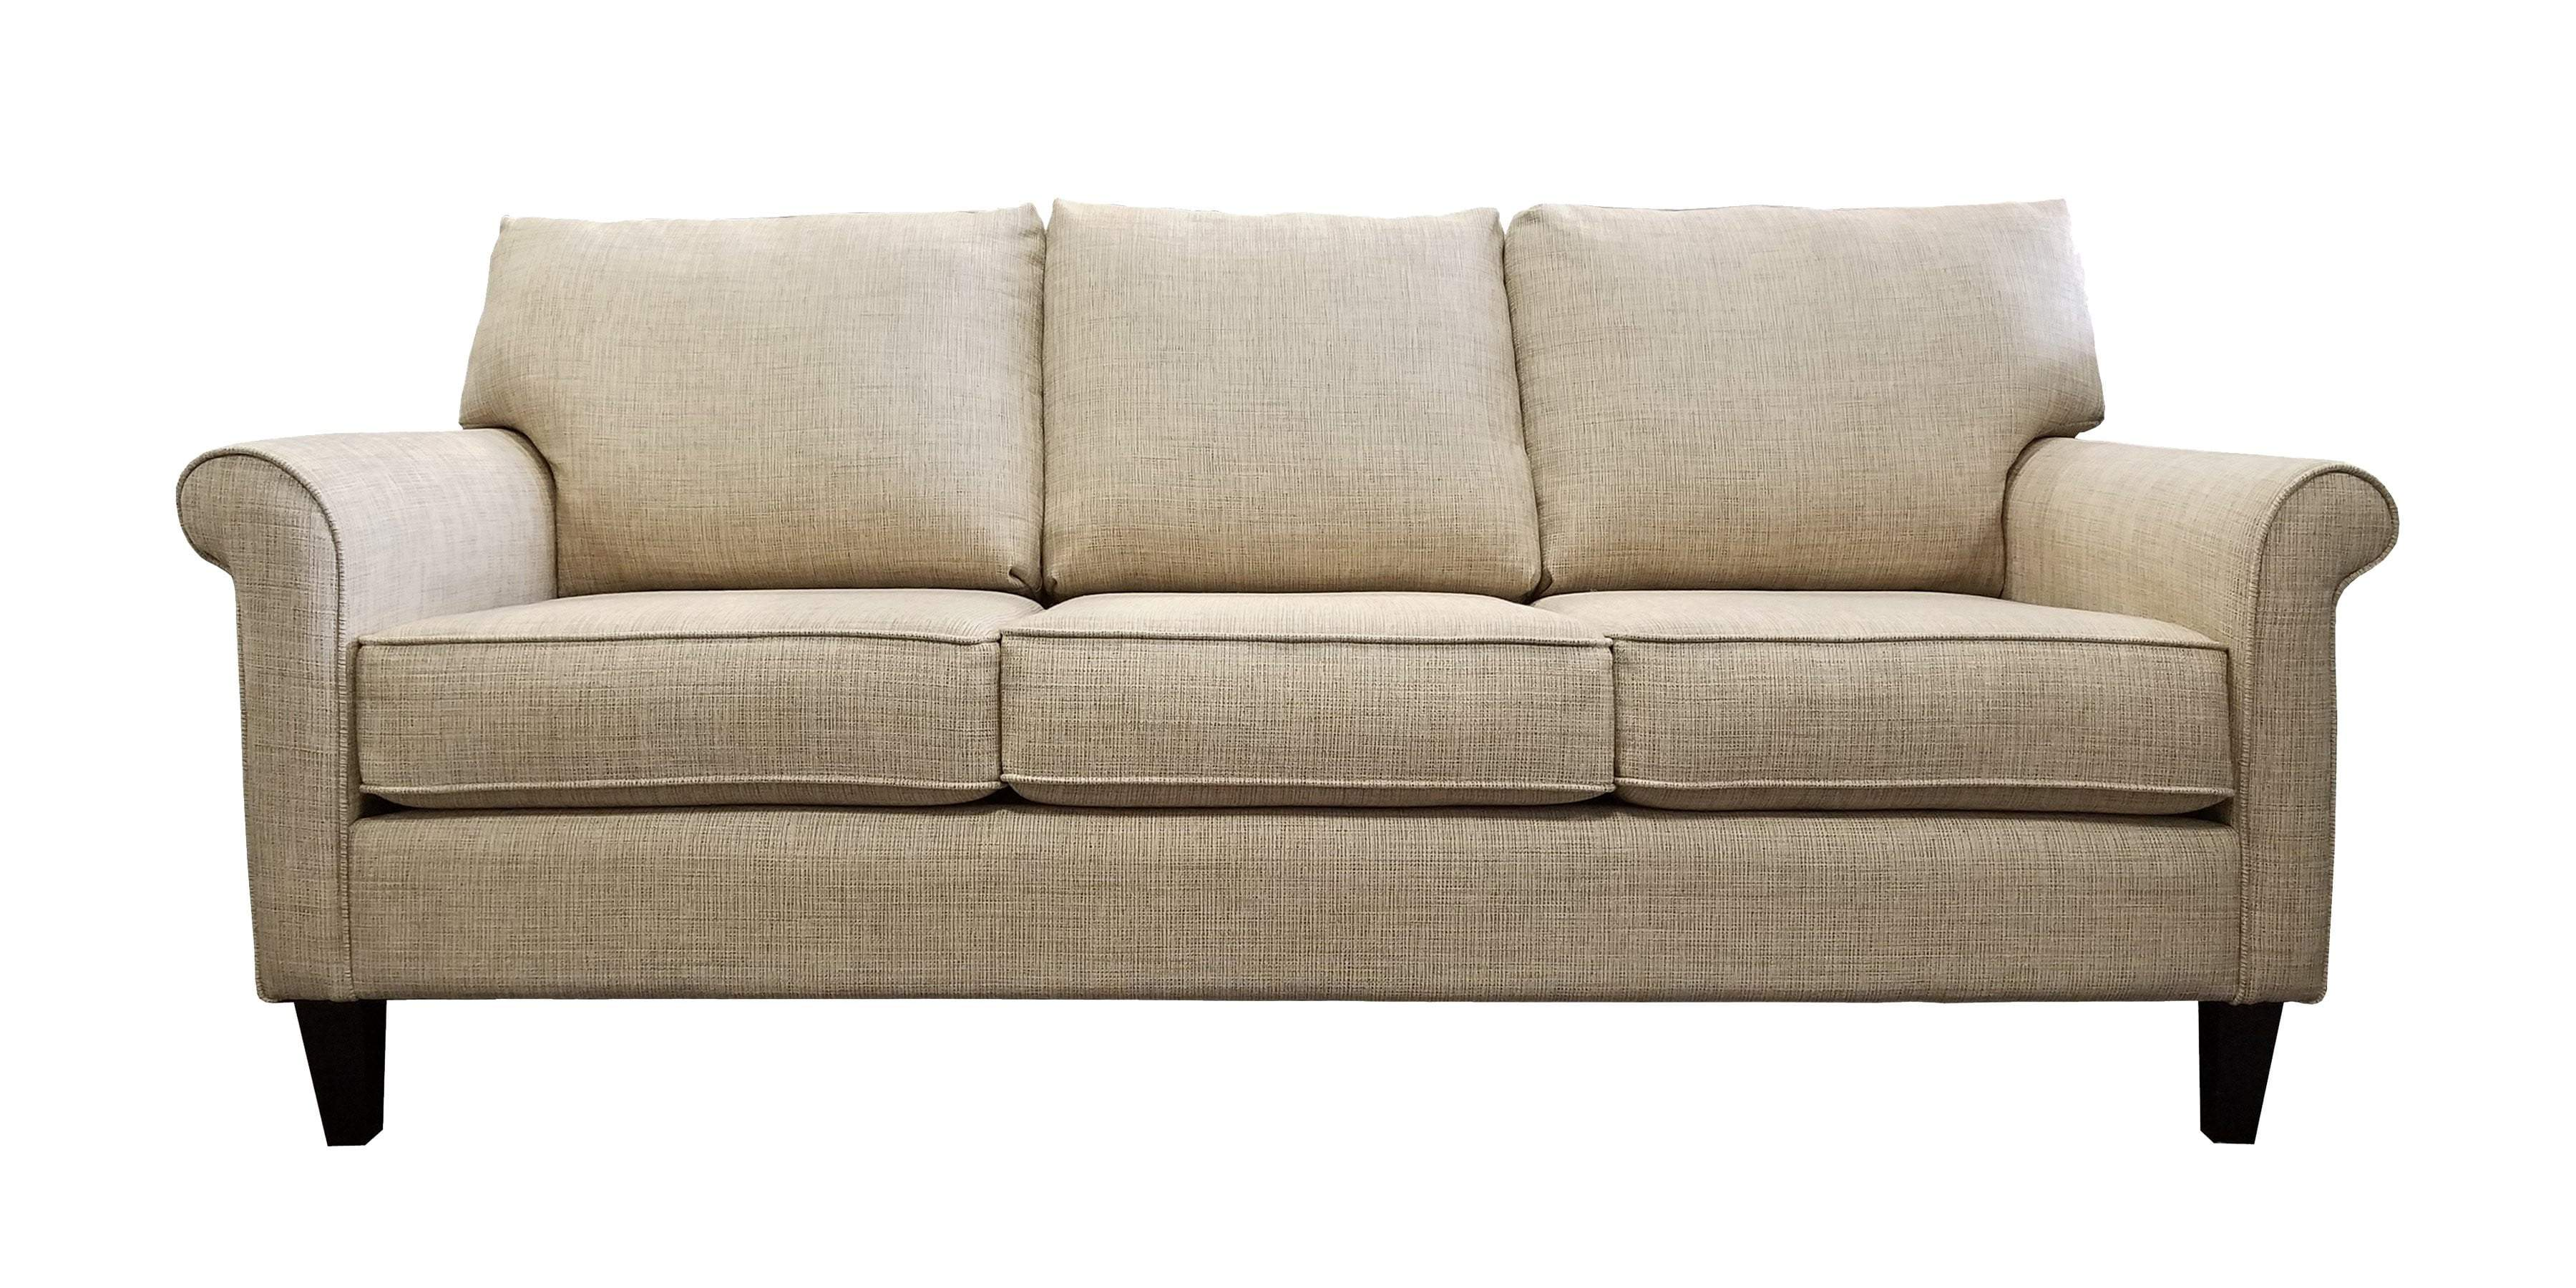 Austin Small Arm Sofa - sofacreations